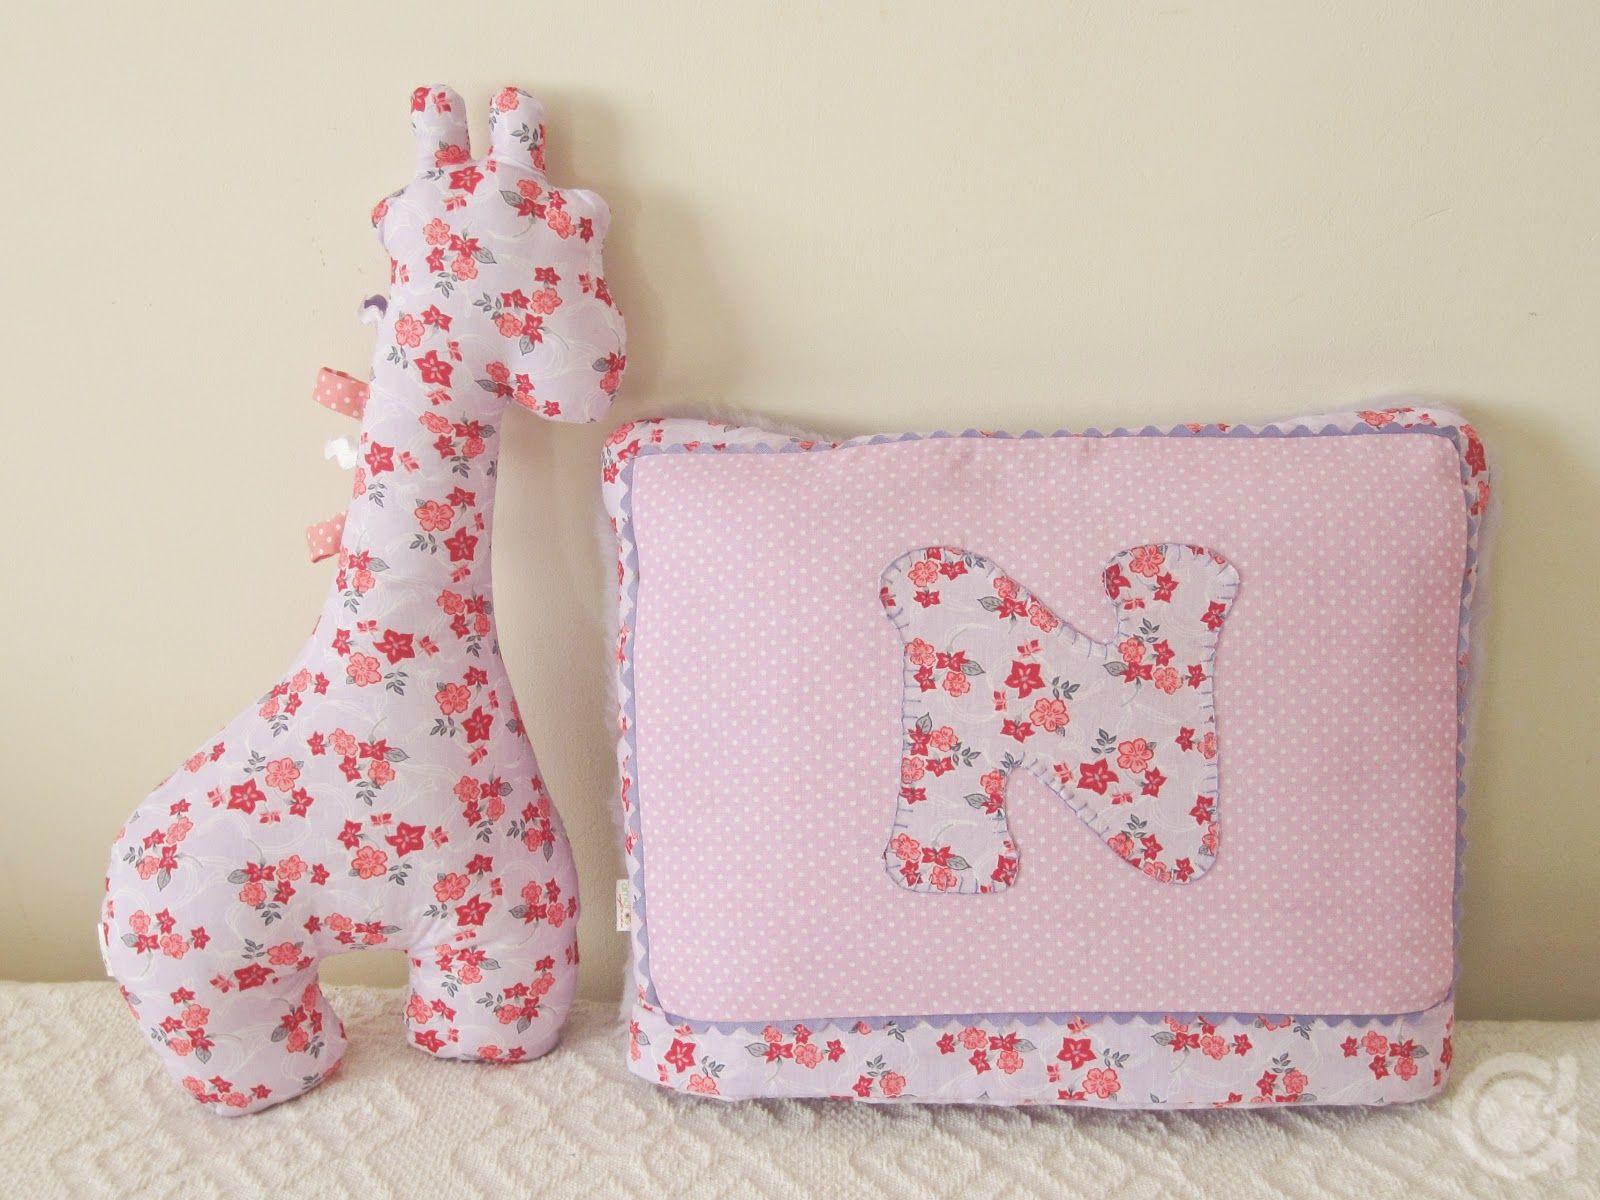 quillow and softie | Crafty Ideas :) | Pinterest | Craft, Sewing ...